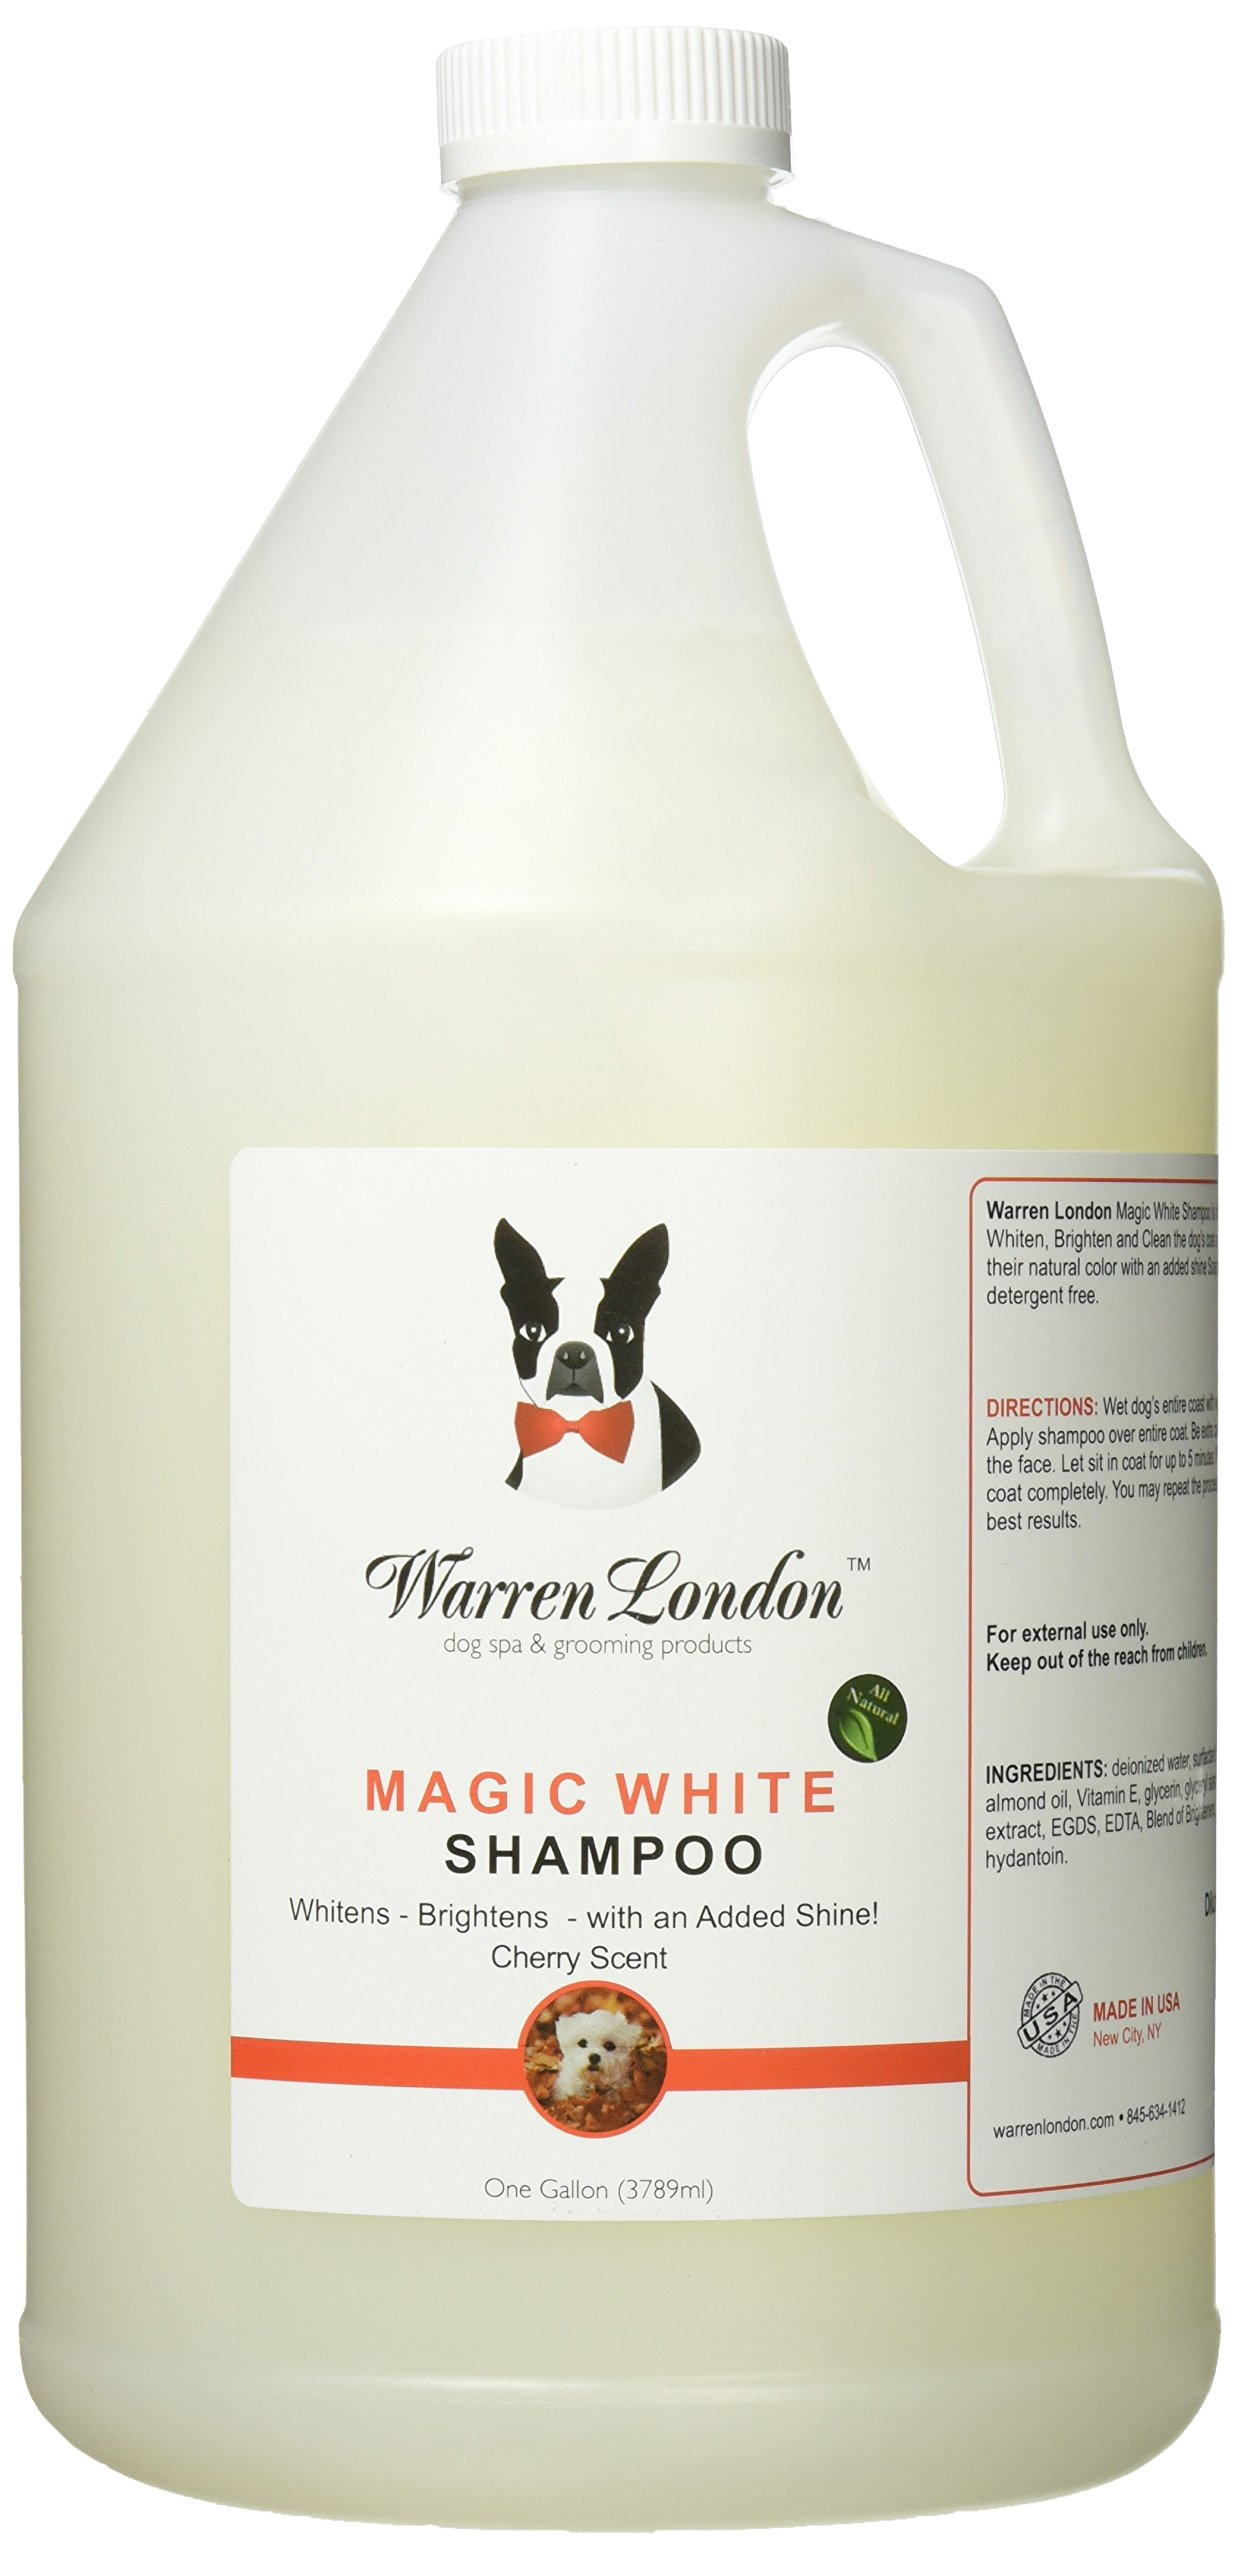 Warren London - Magic White Brightening Dog Shampoo - 1gal- Cherry Scented - Cleans, Conditions and Whitens w/ Vitamin E and Almond Oil - No Soap, Detergents, or Parabens